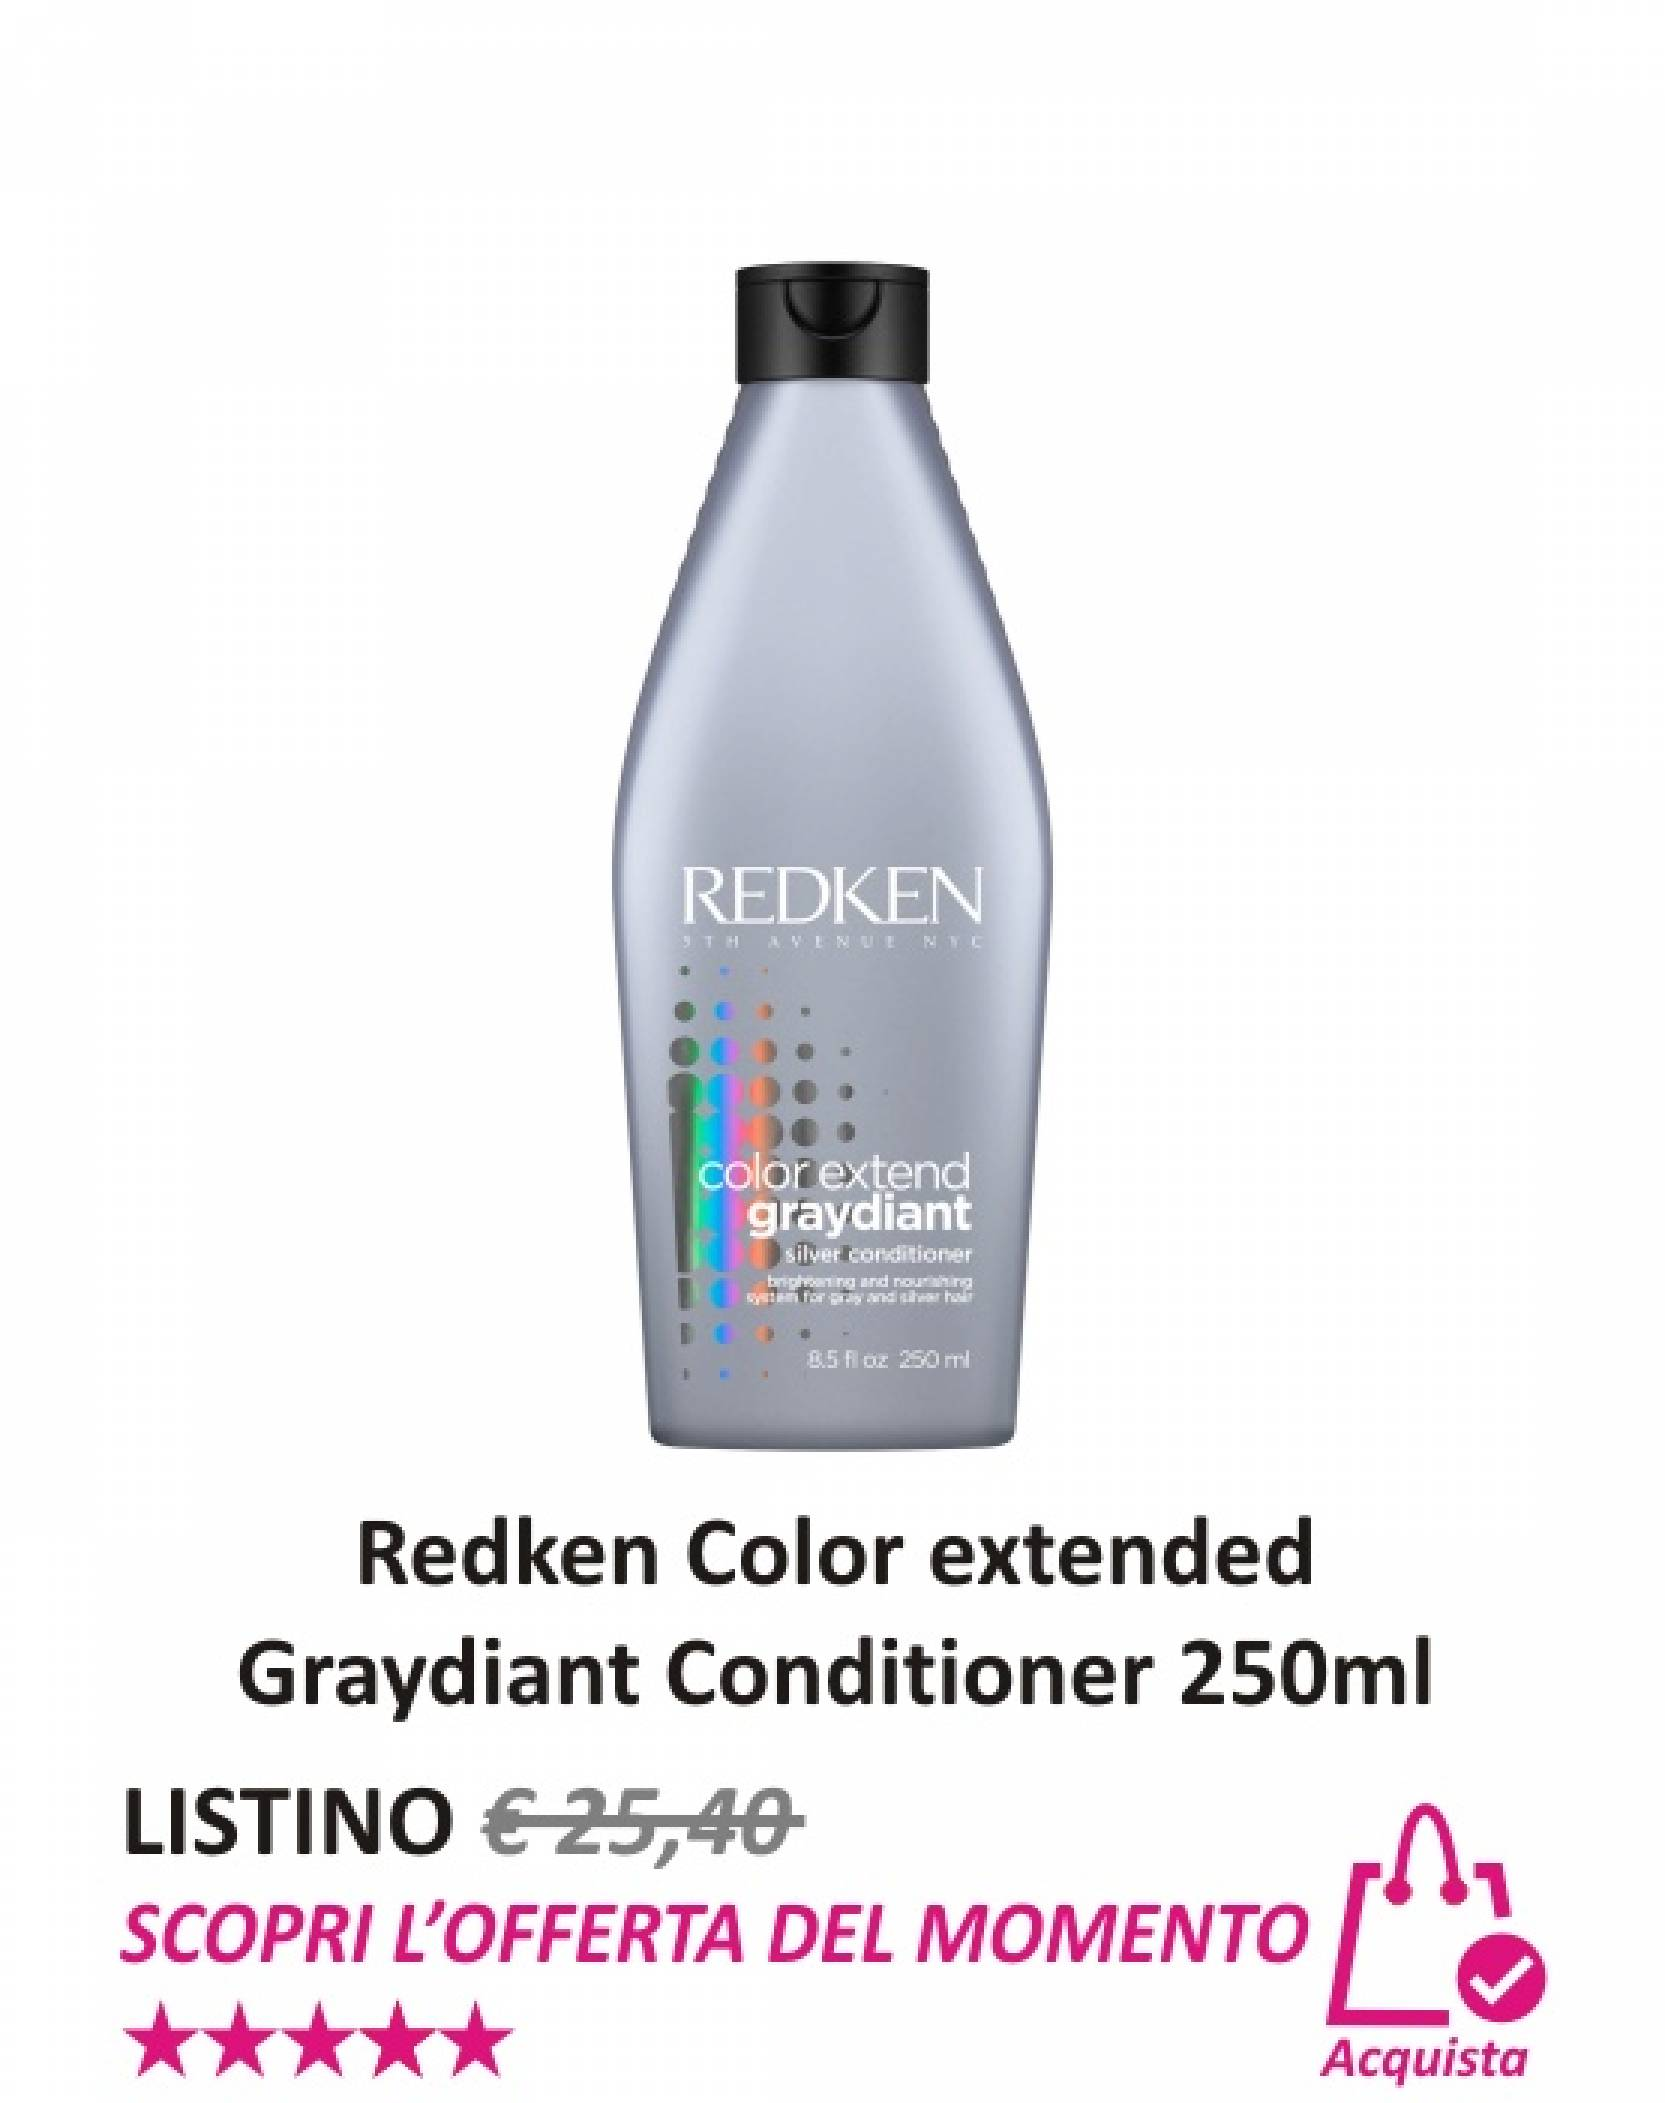 Redken Color extended Graydiant Conditioner